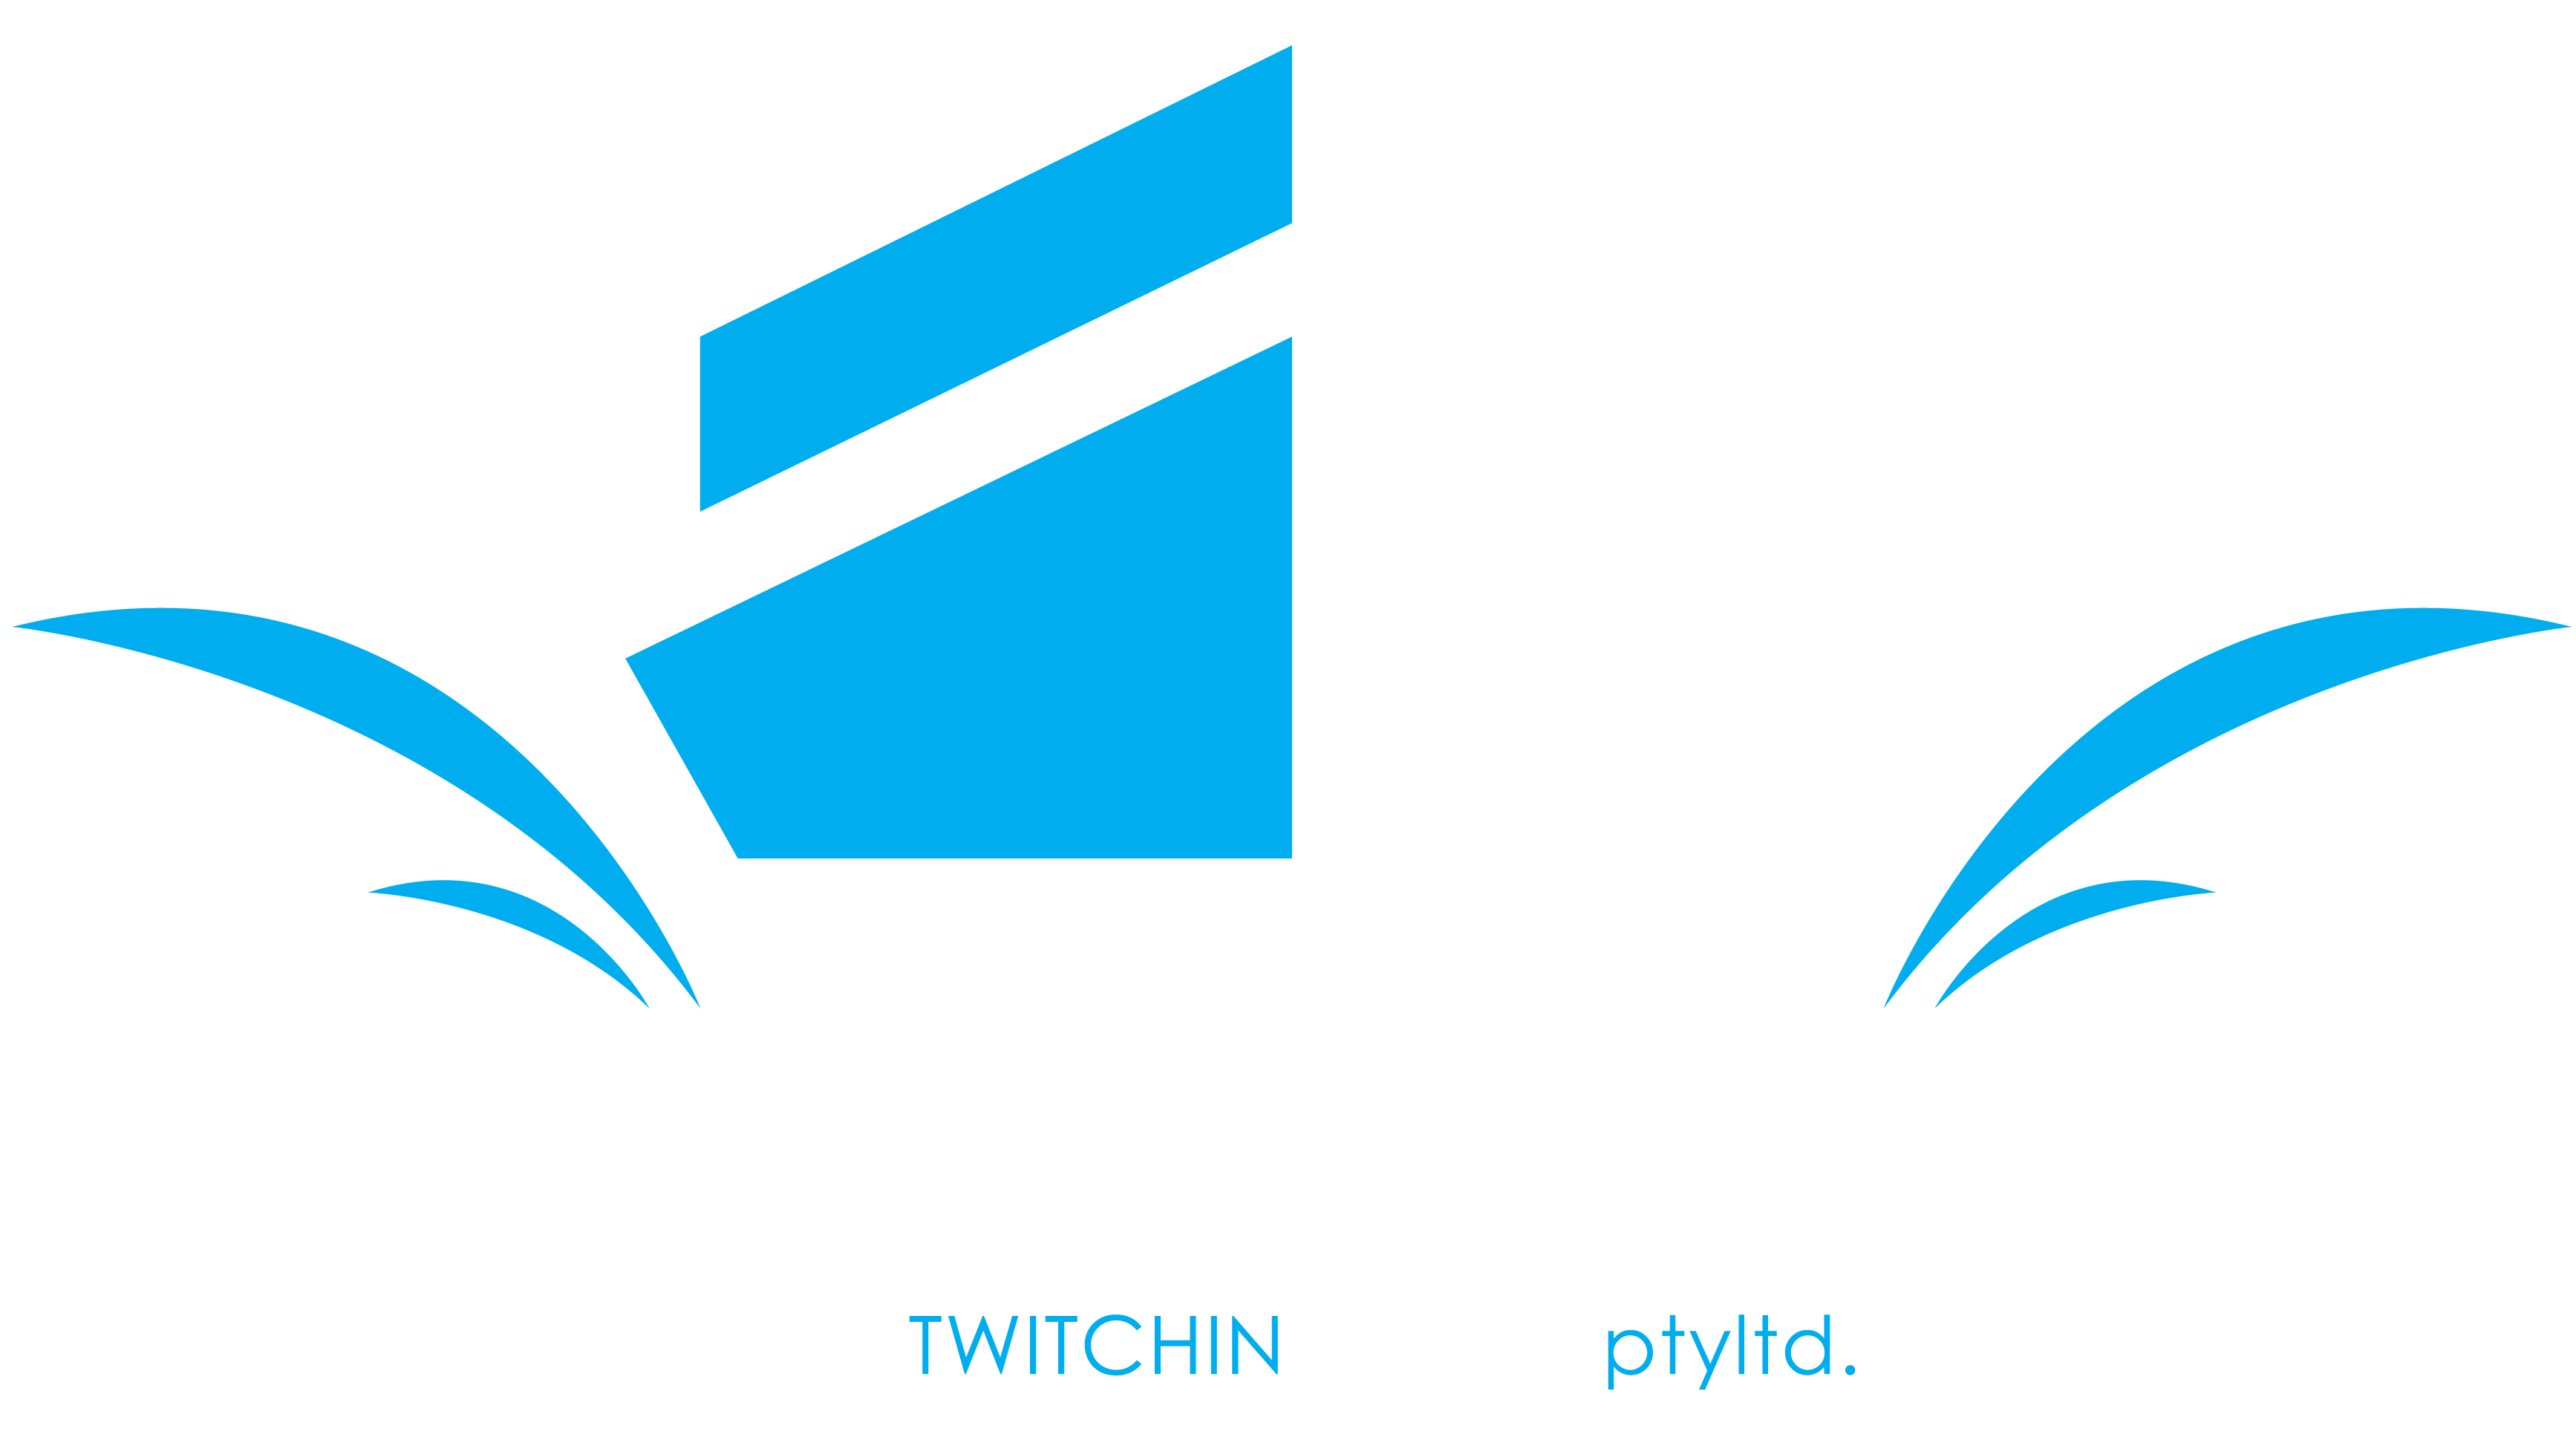 Rod Twitchin Marine | RT Marine